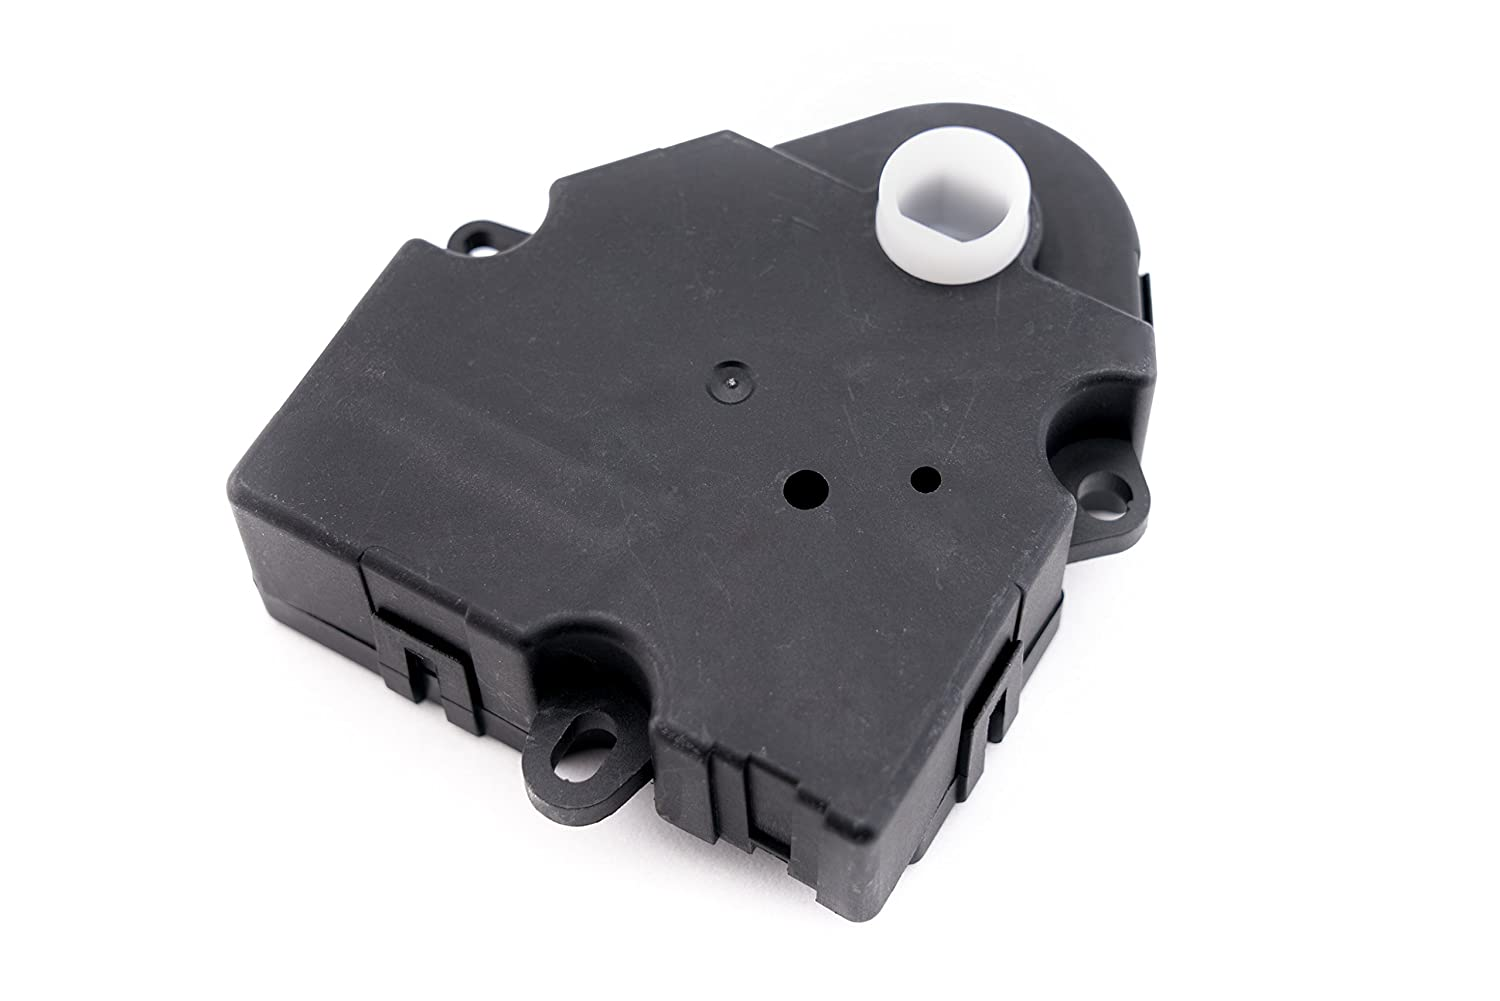 Air Door Actuator - Replaces# 15-73952, 52495593, 89018374, 604-112 - 2003-2014 Chevrolet, Chevy, GMC, Cadillac, Hummer Models - HVAC Blend Control Actuator - Air Heater Blend Door Image